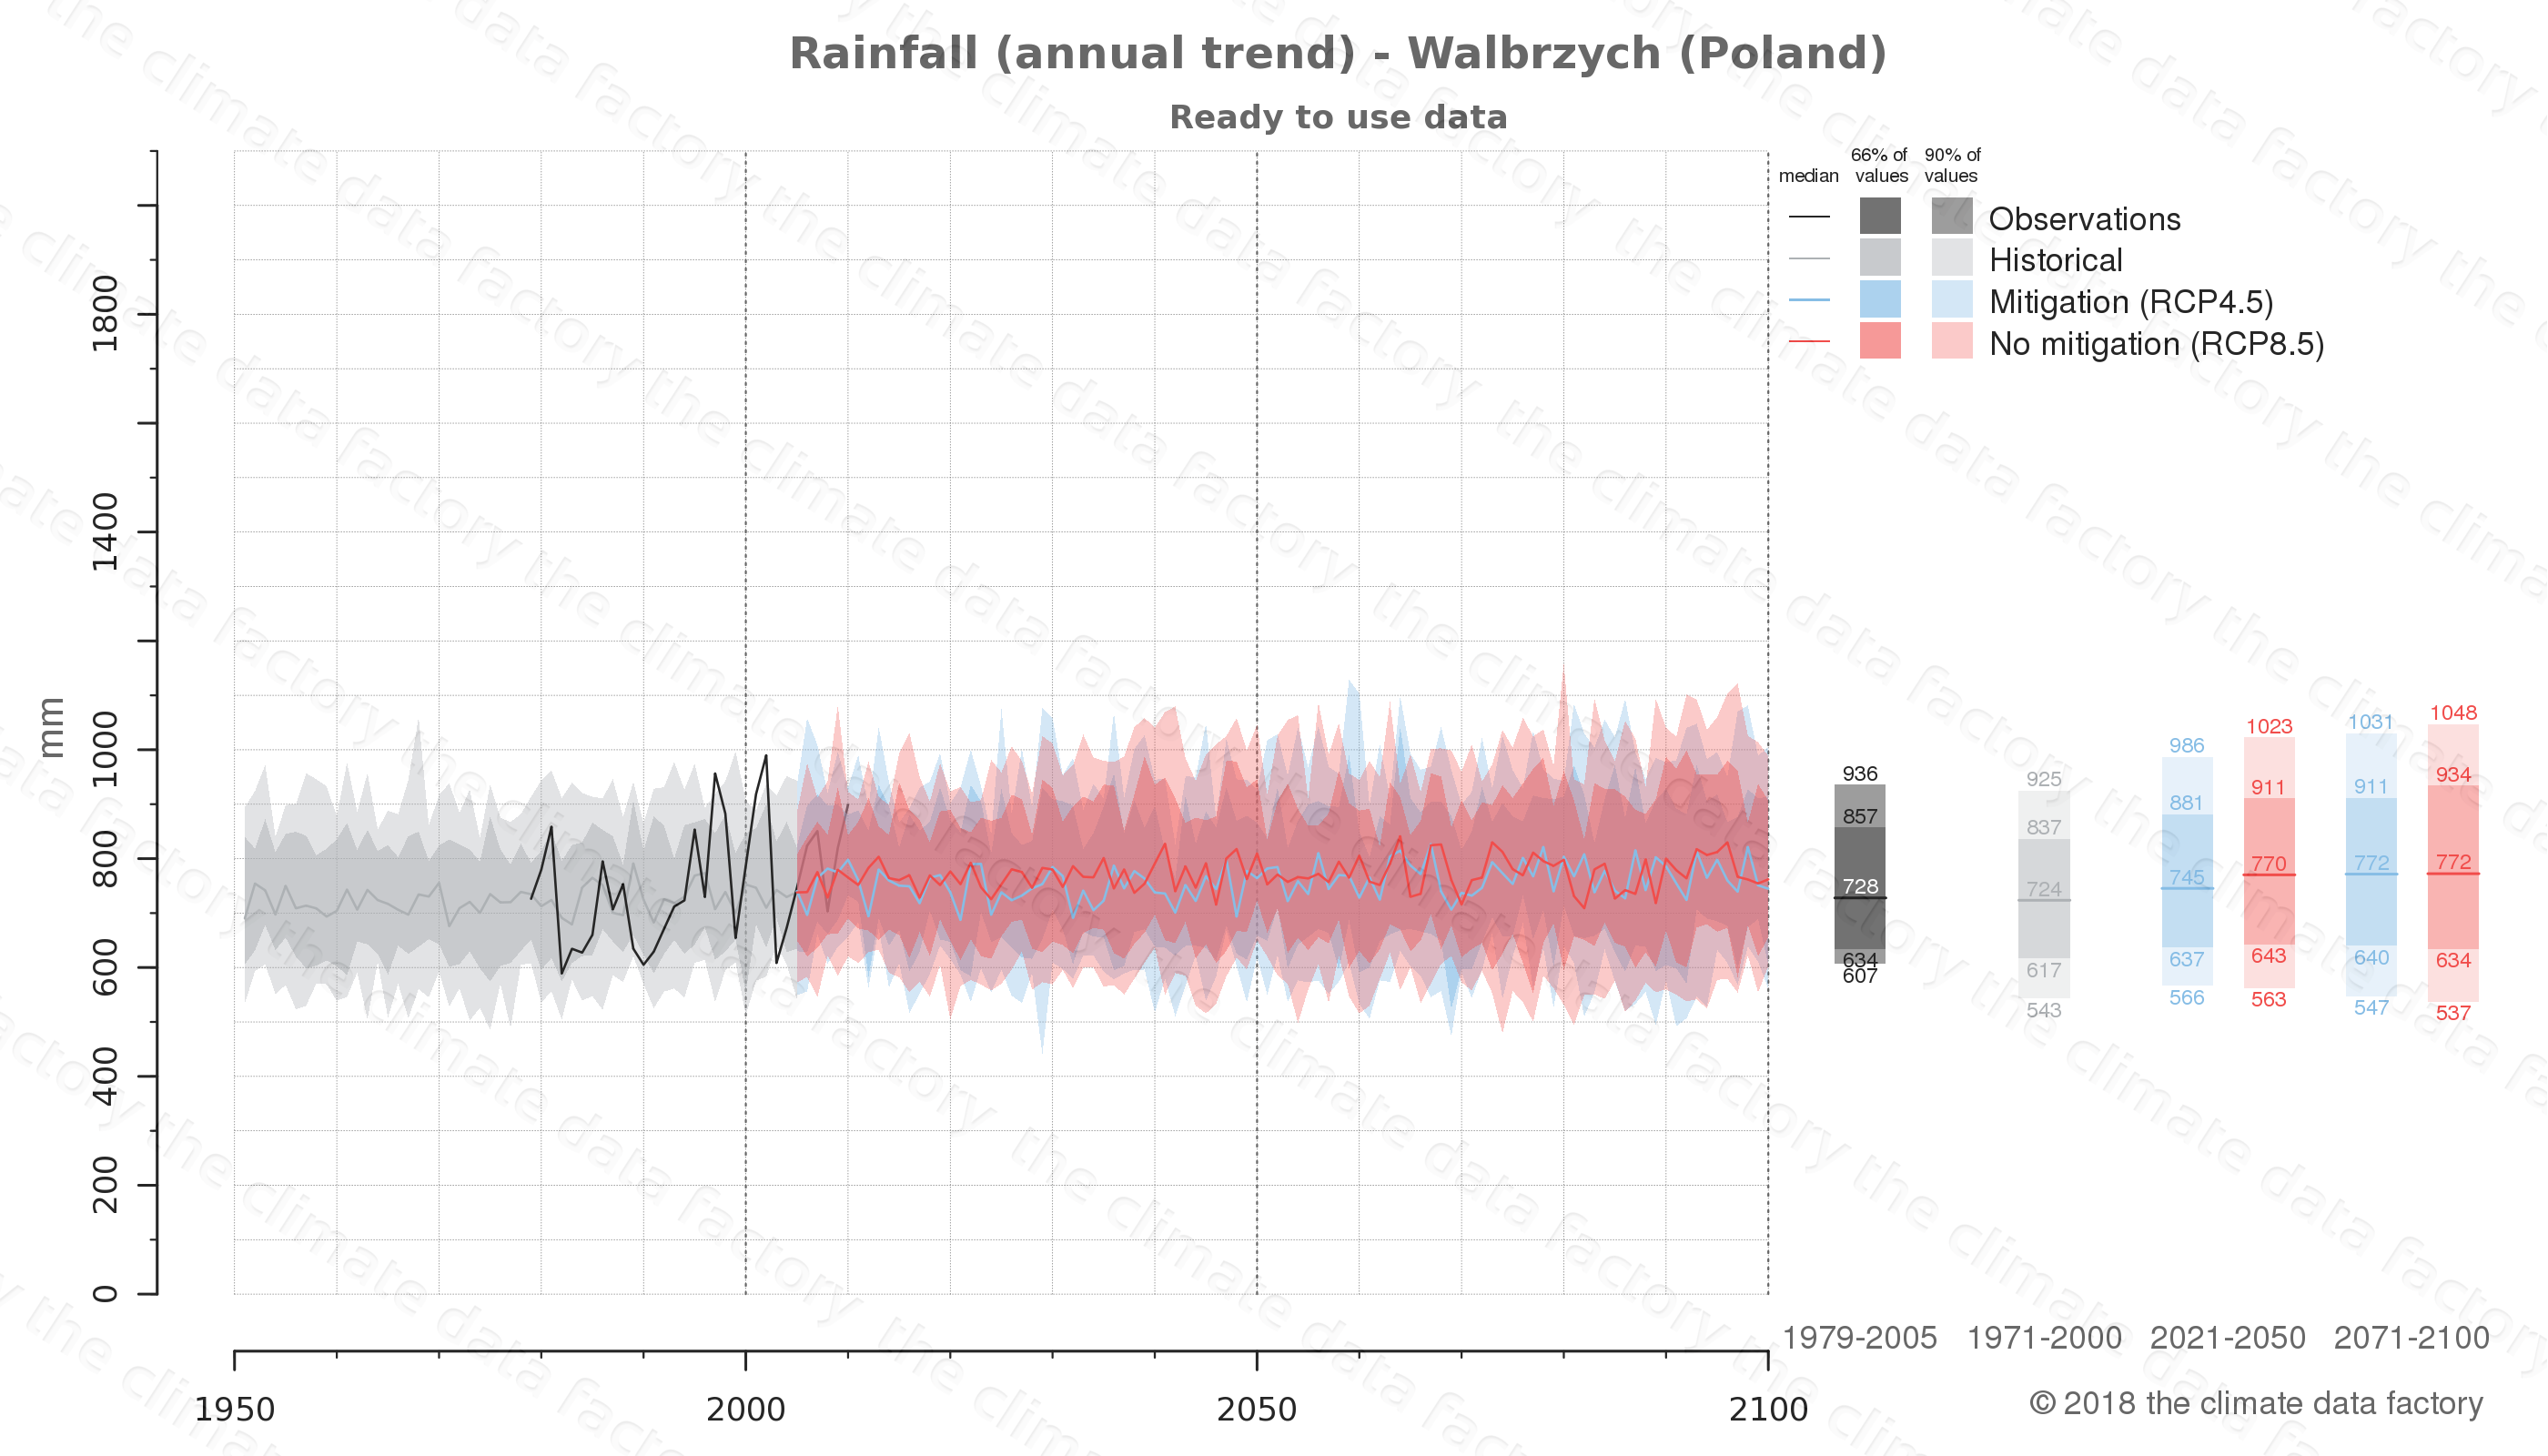 climate change data policy adaptation climate graph city data rainfall walbrzych poland